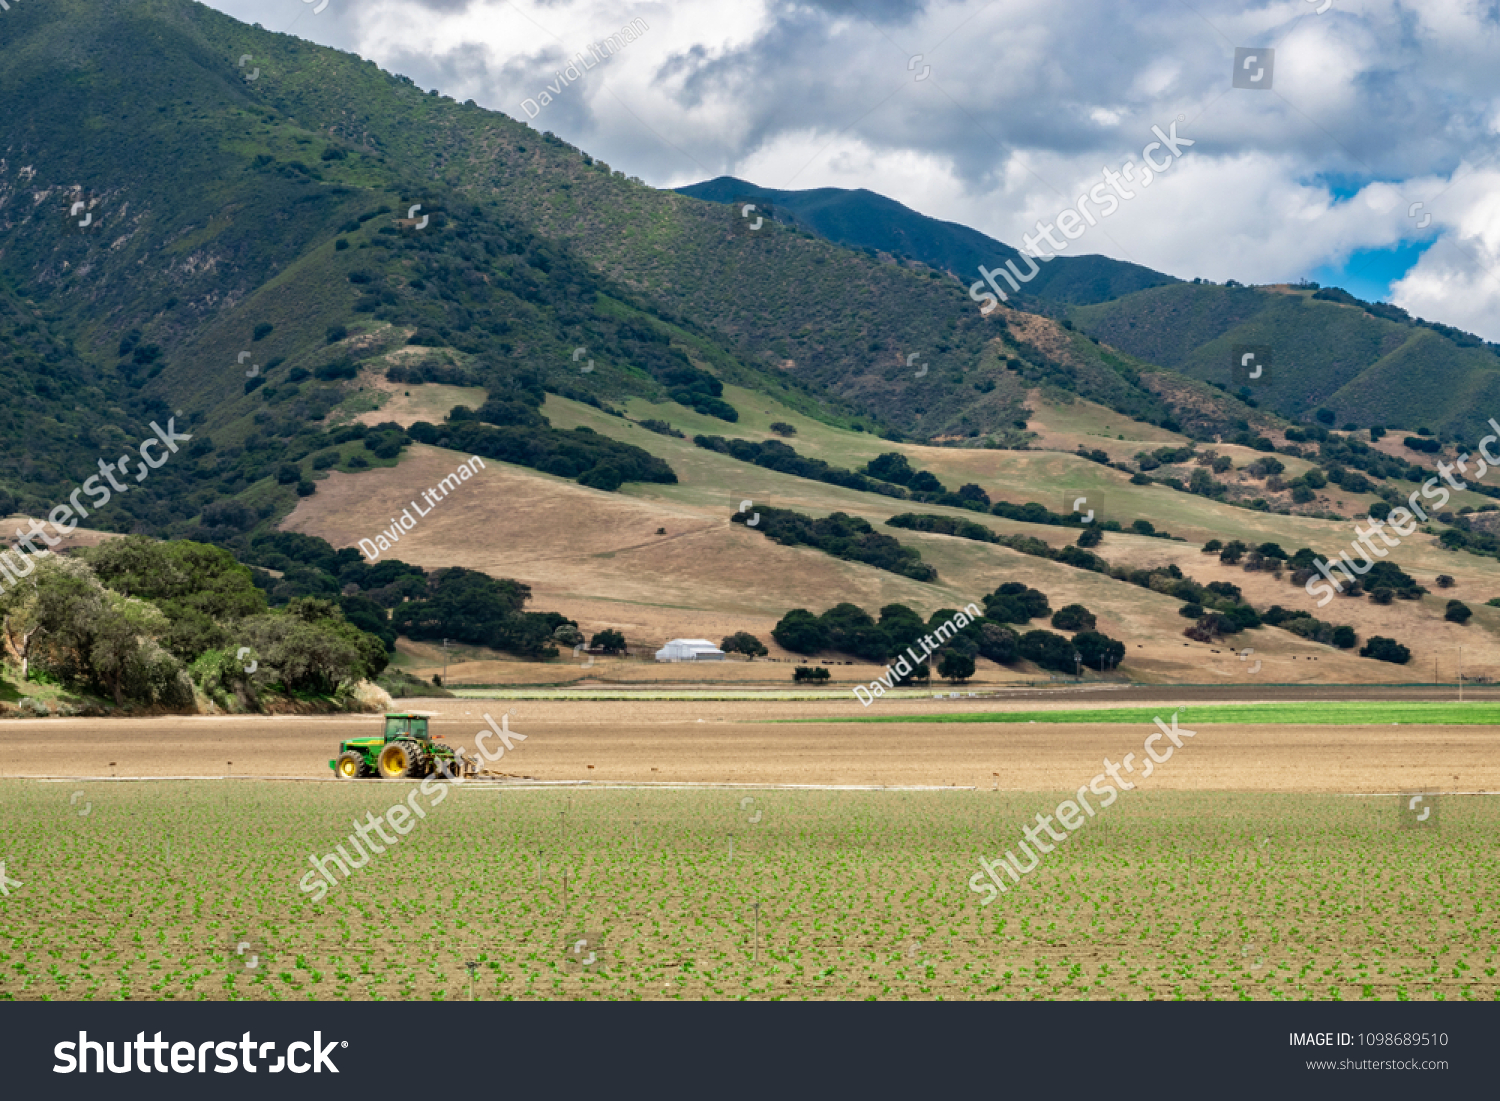 Salinas, California - May 16, 2018: The rural farms of the Salinas Valley of central California grow crops for worldwide distribution.